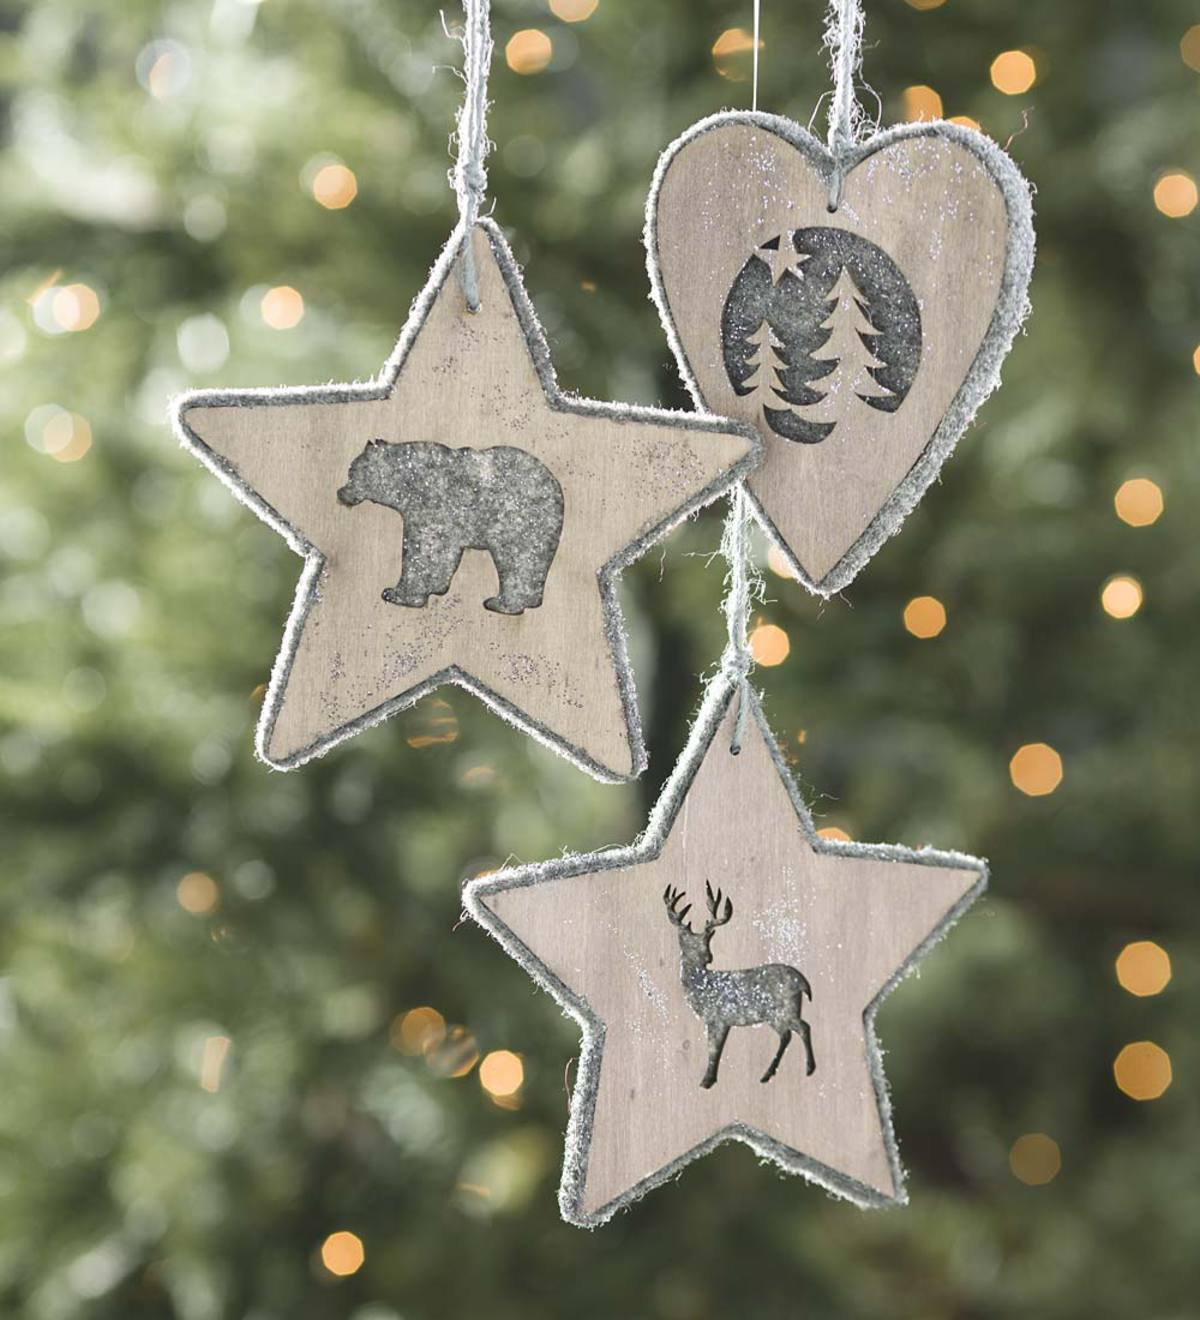 Poplar Wood & Wool Insert Ornaments, Set of 3 - Gray